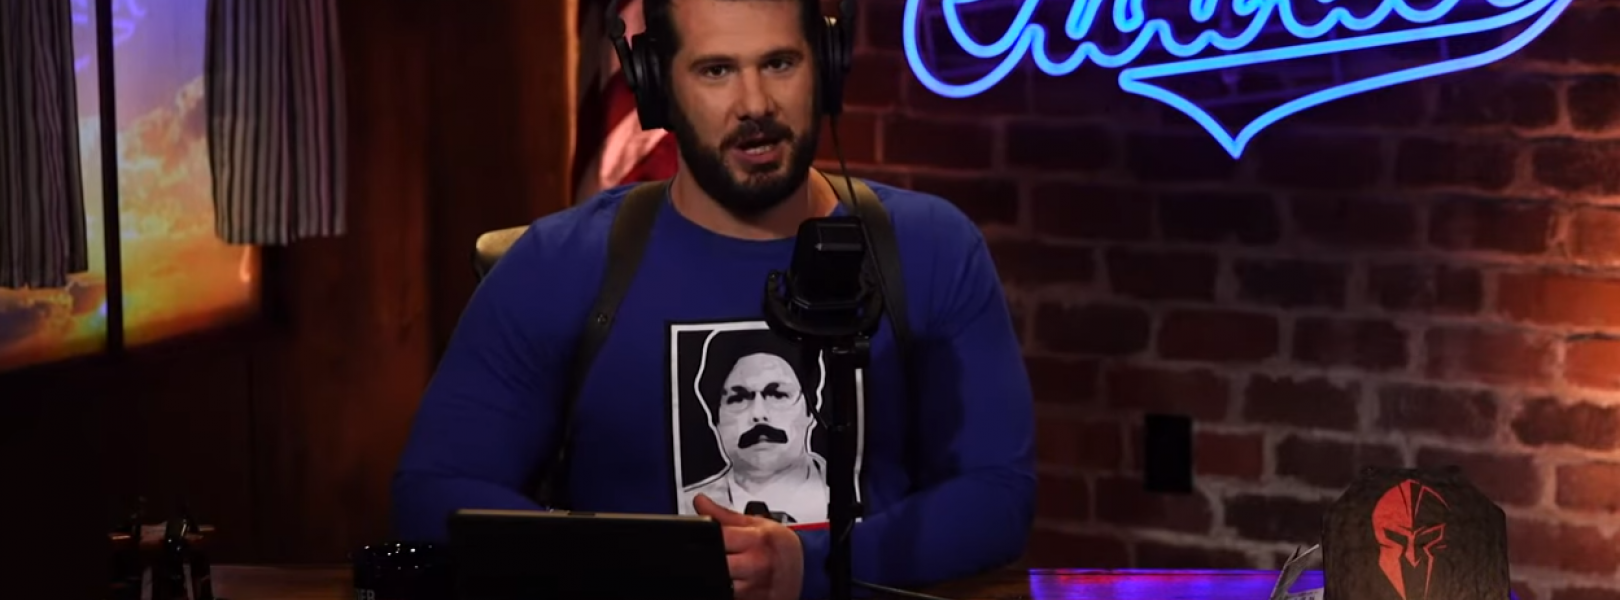 Steven Crowder demands women stay silent on men's sports after previously ranting about women's sports